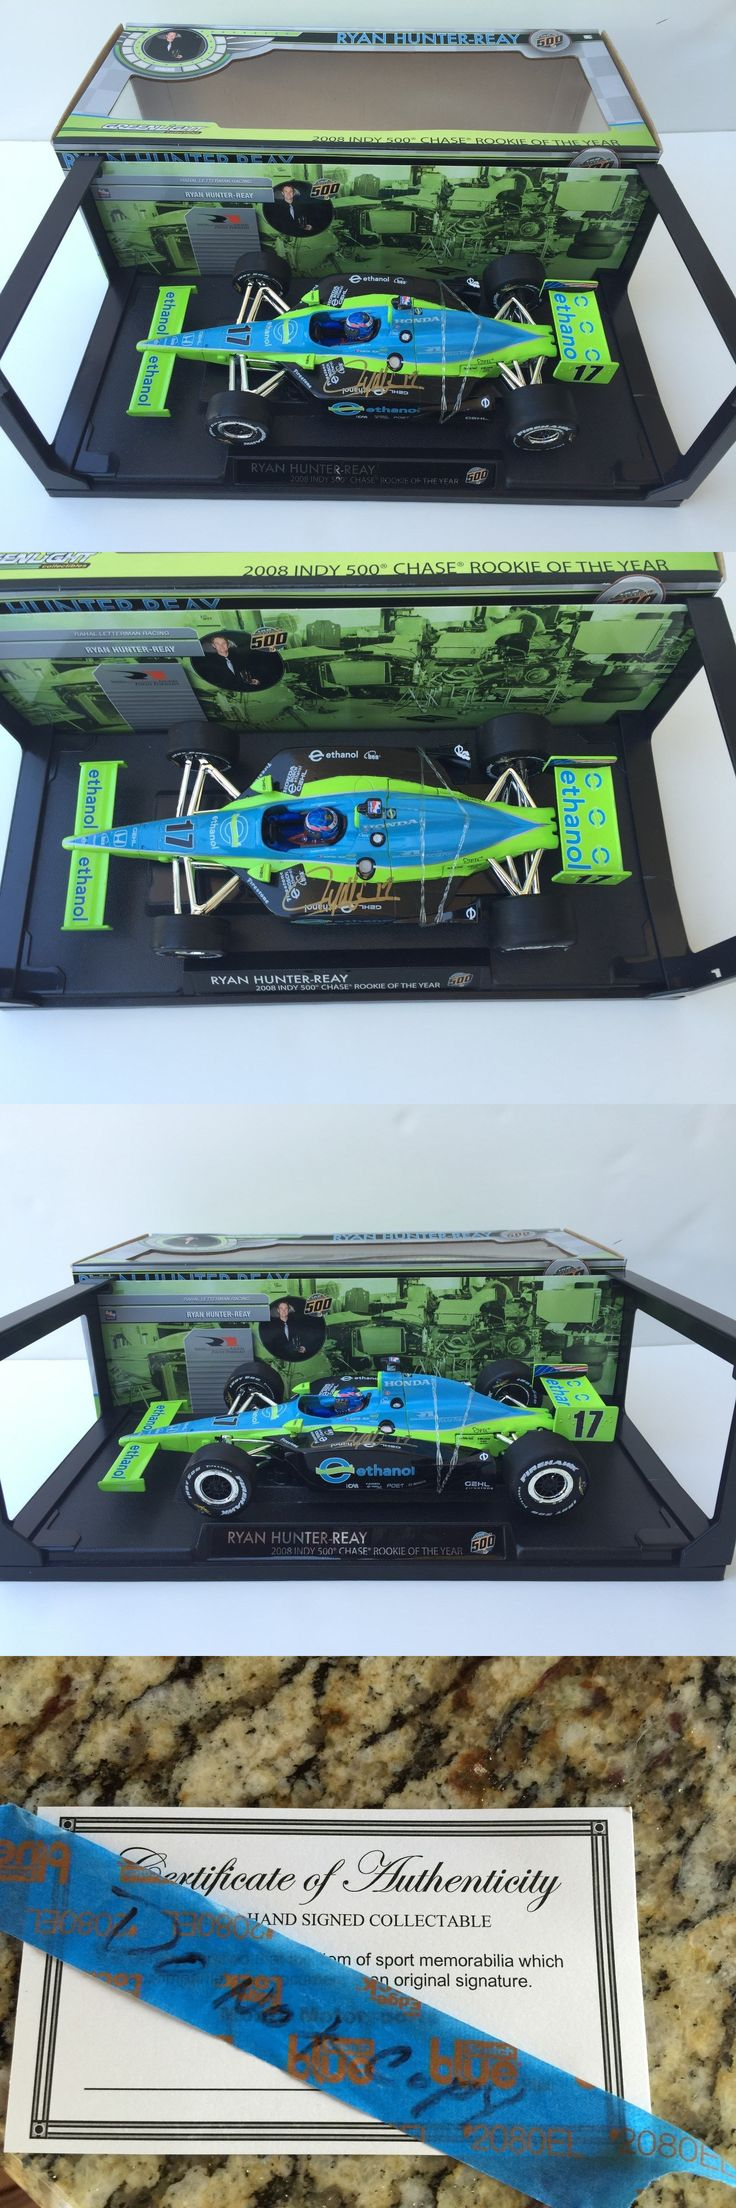 Racing-Indy 1228: Ryan Hunter-Reay, Hand Signed, 1 18 Scale Diecast By Greenlight Rookie Of Year -> BUY IT NOW ONLY: $79 on eBay!